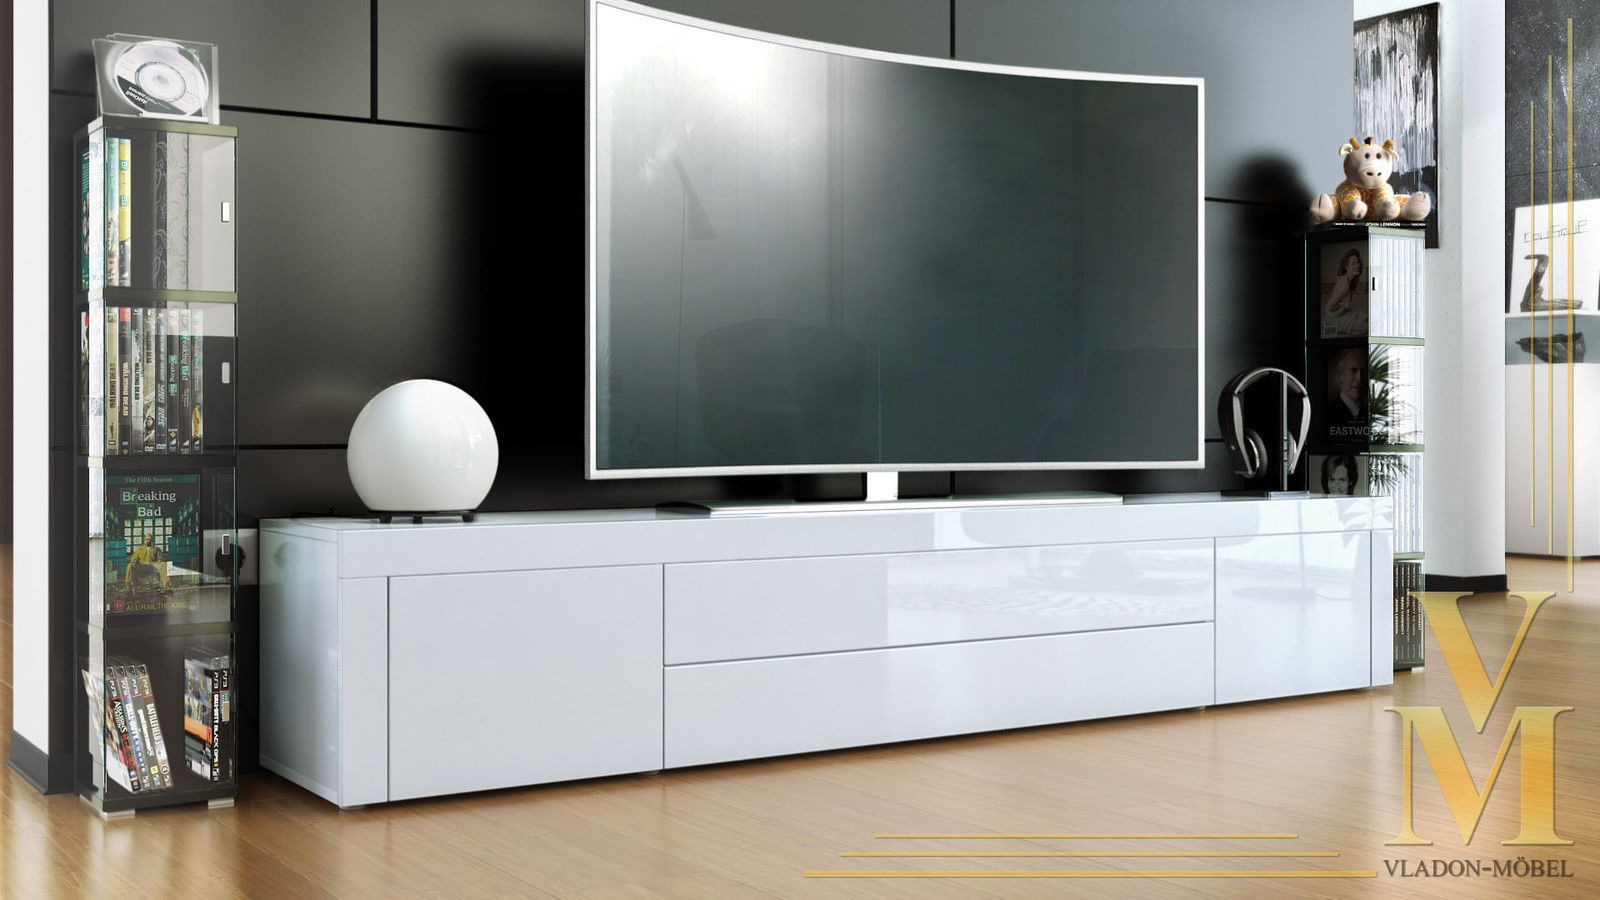 Details About Tv Stand Board Unit Lowboard Cabinet La Paz White